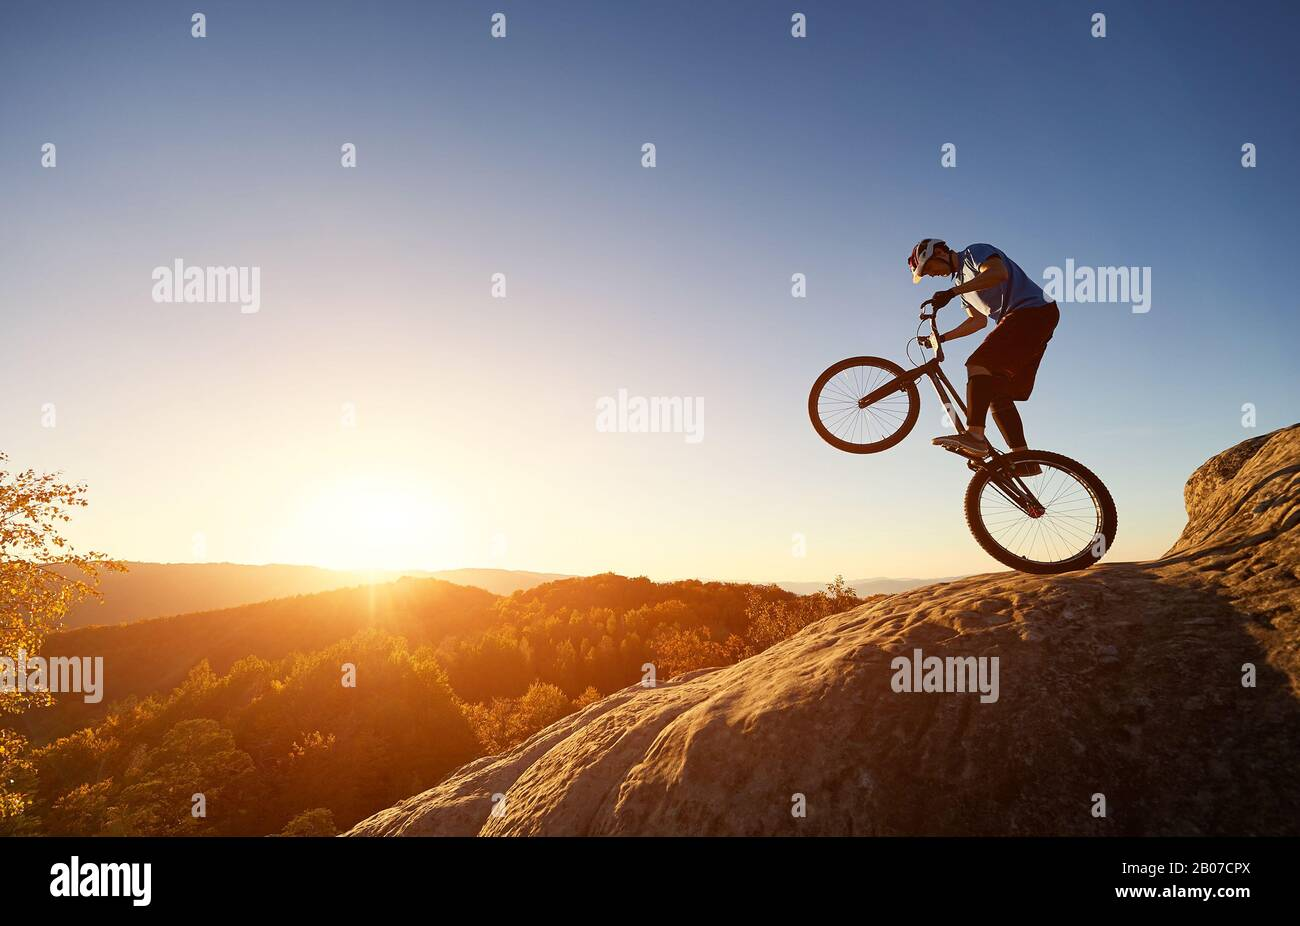 Silhouette of cyclist balancing on back wheel on trial bicycle. Courageous sportsman biker making acrobatic trick on top of rocky mountain at sunset. Concept of extreme sport active lifestyle Stock Photo